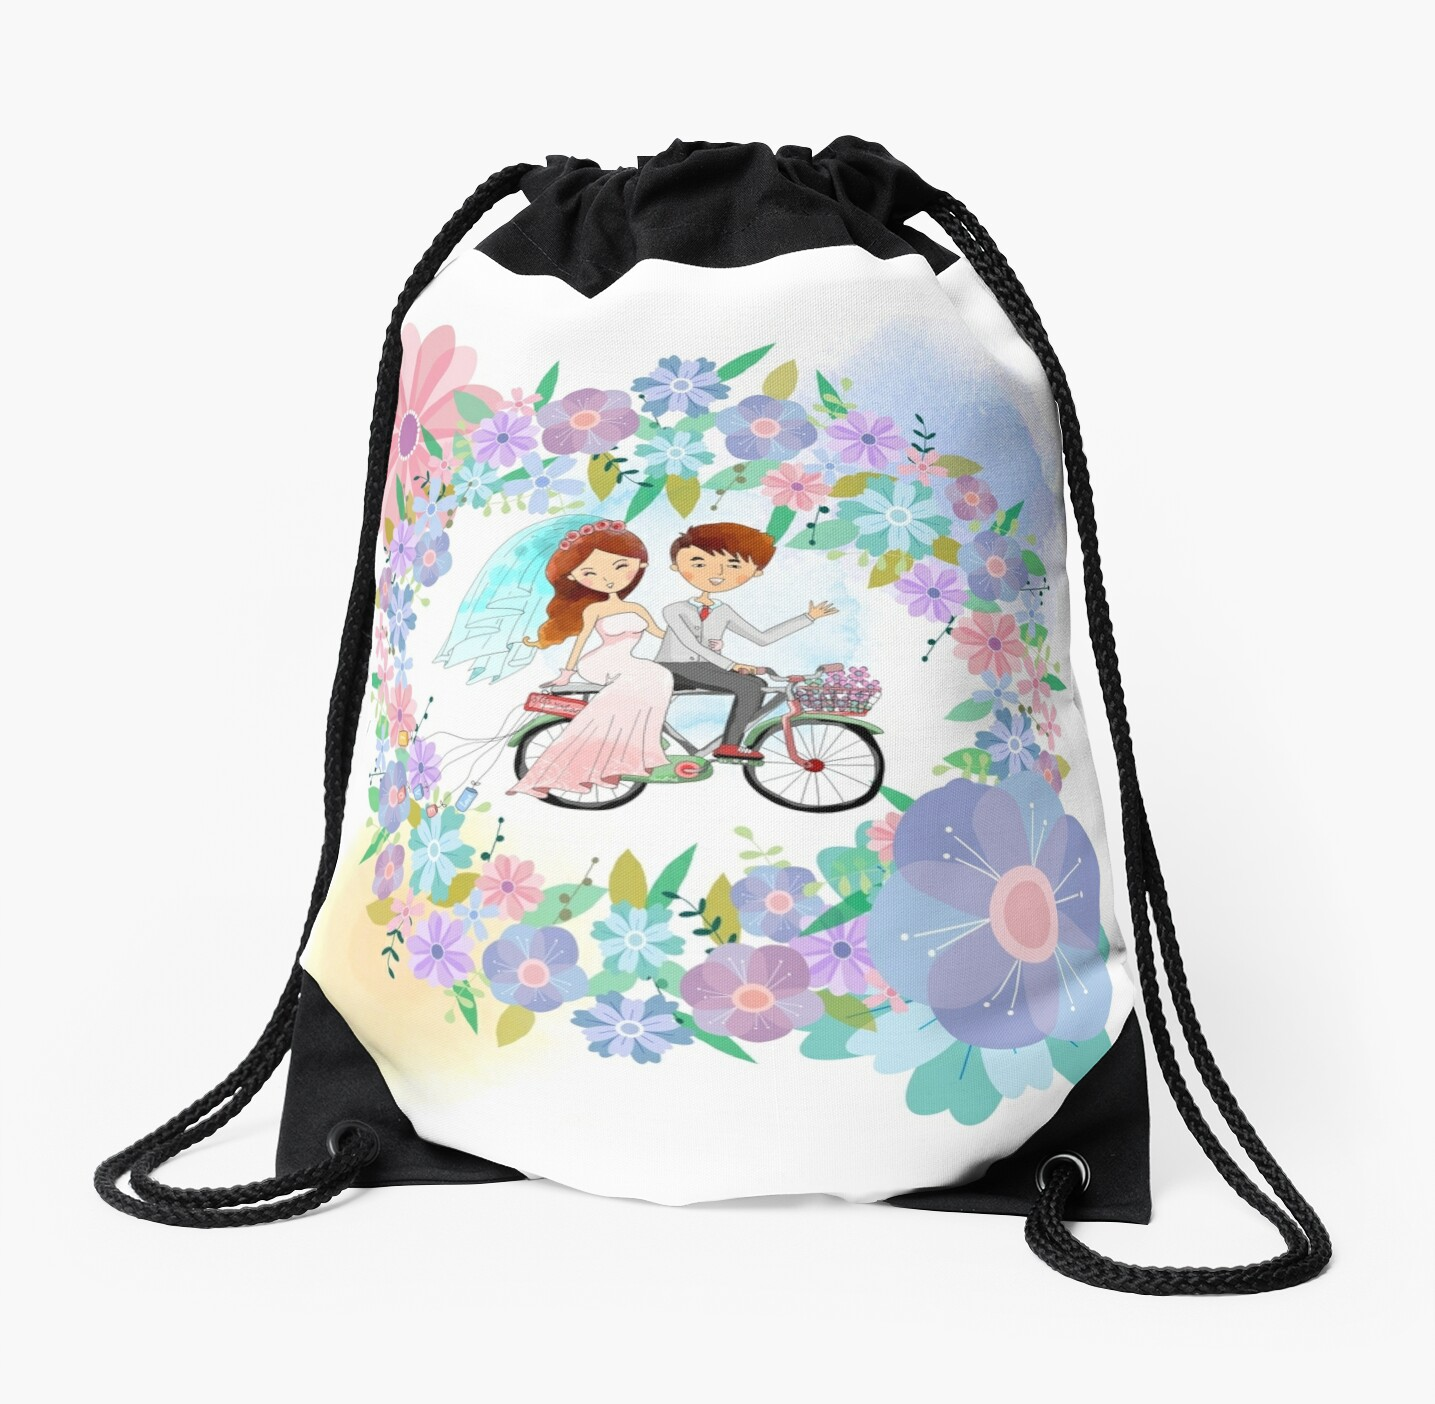 Bride and Groom on Bicycle Floral Wreath Wedding by peacockcards